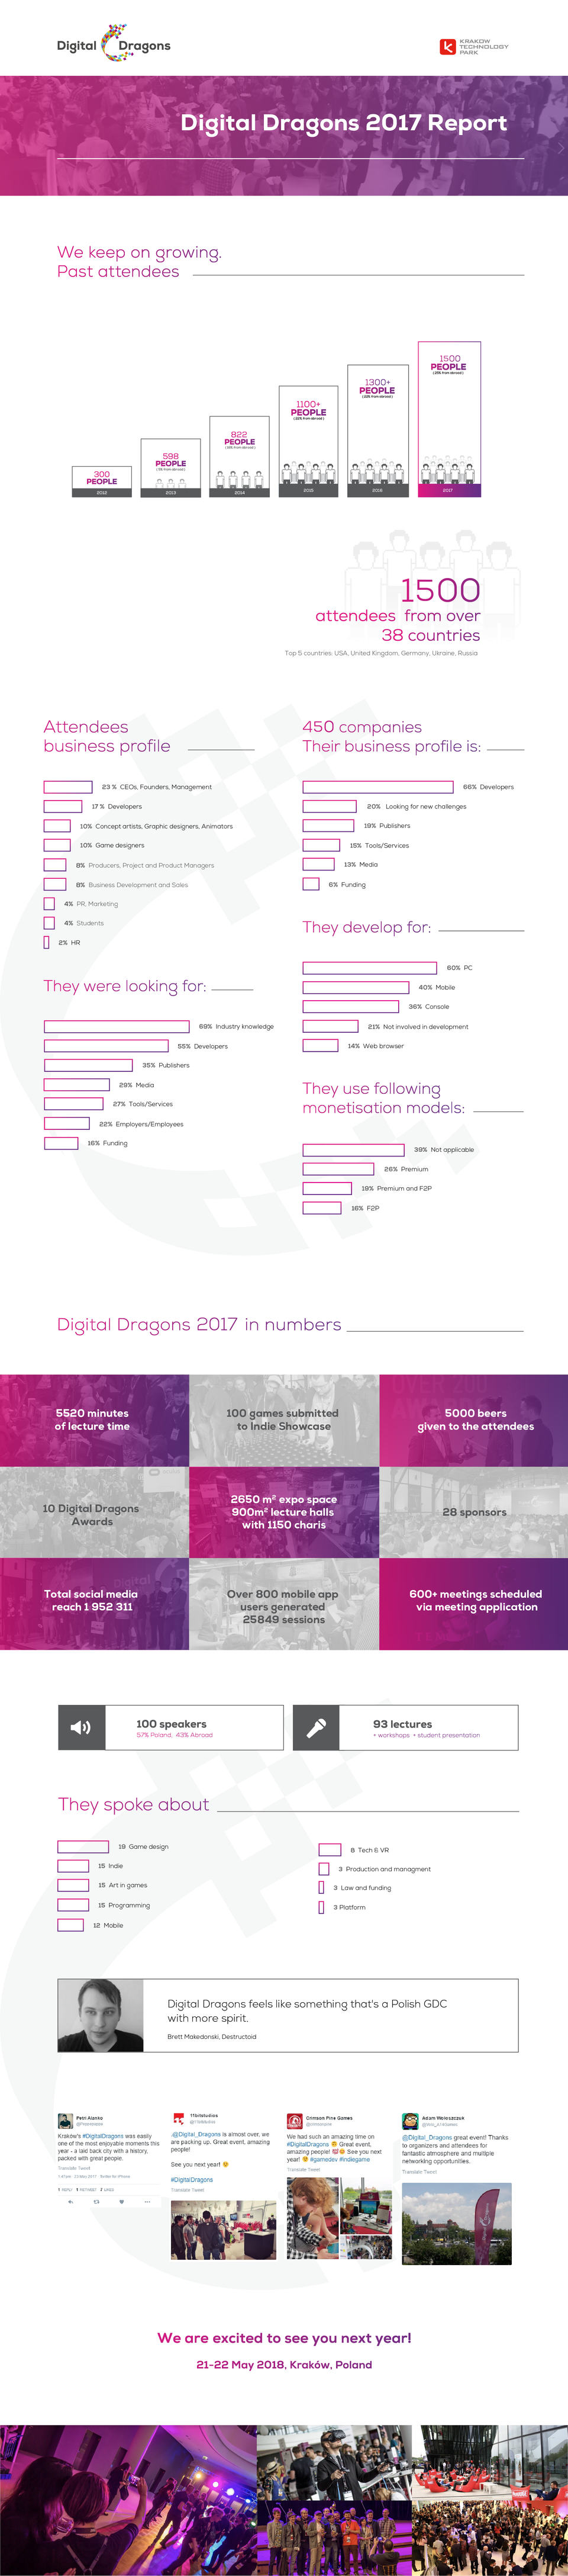 Digital Dragons 2017 w liczbach - INFOGRAFIKA.png